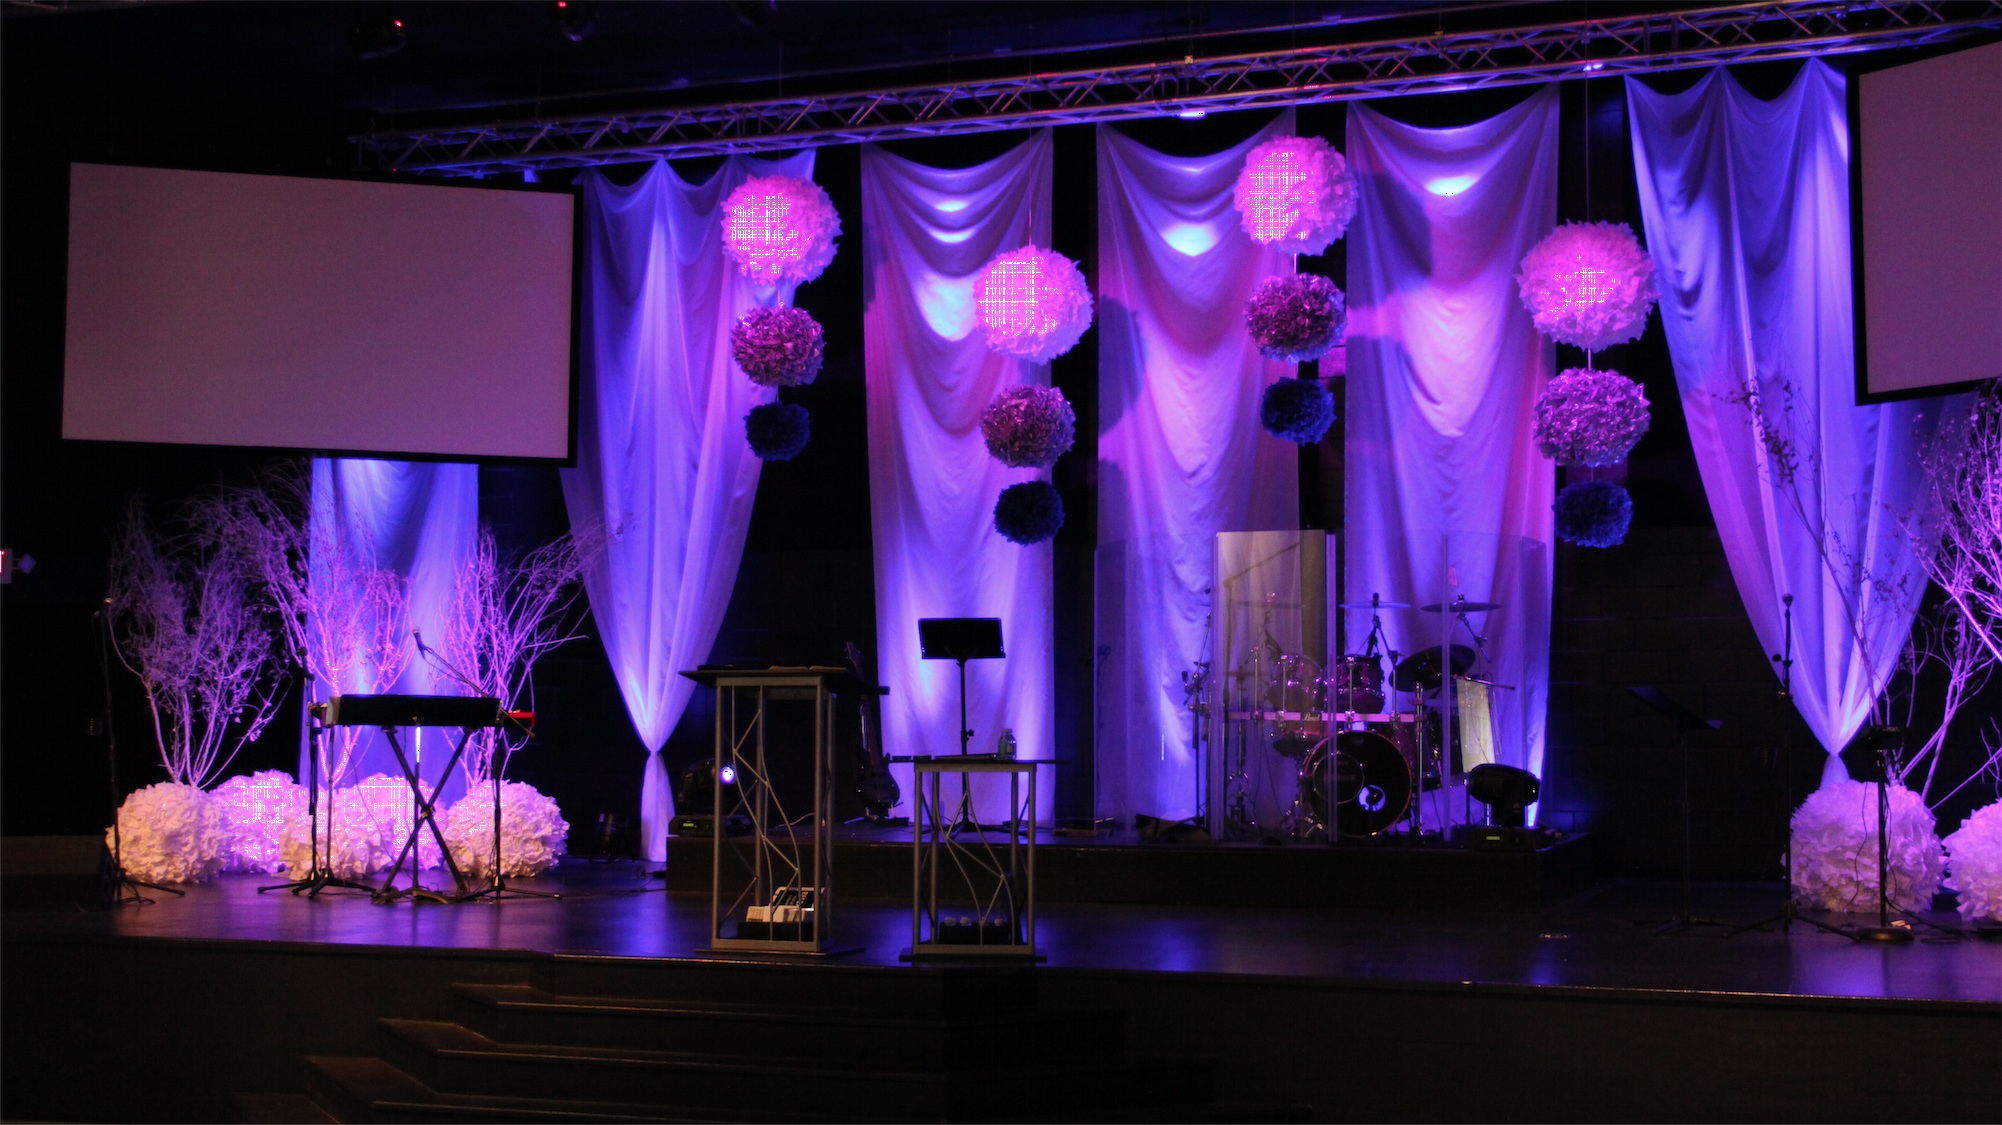 posted - Church Stage Design Ideas